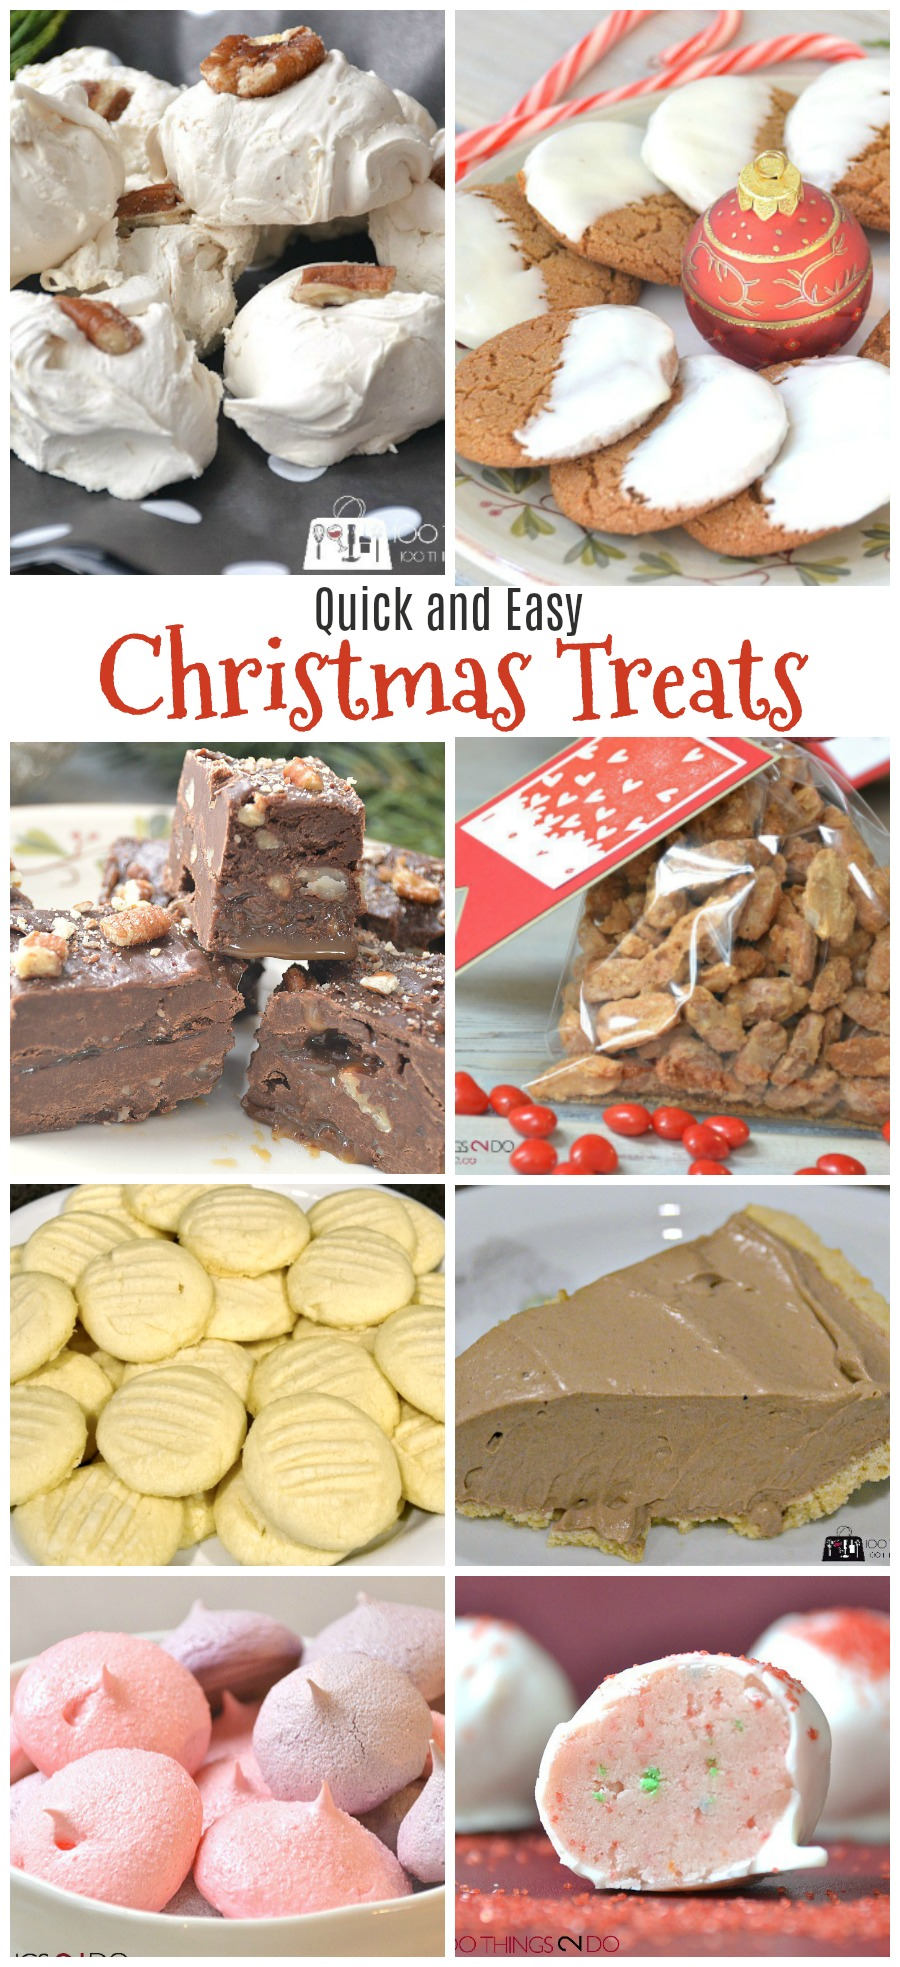 Easy Christmas Treats.Quick And Easy Christmas Treats 100 Things 2 Do